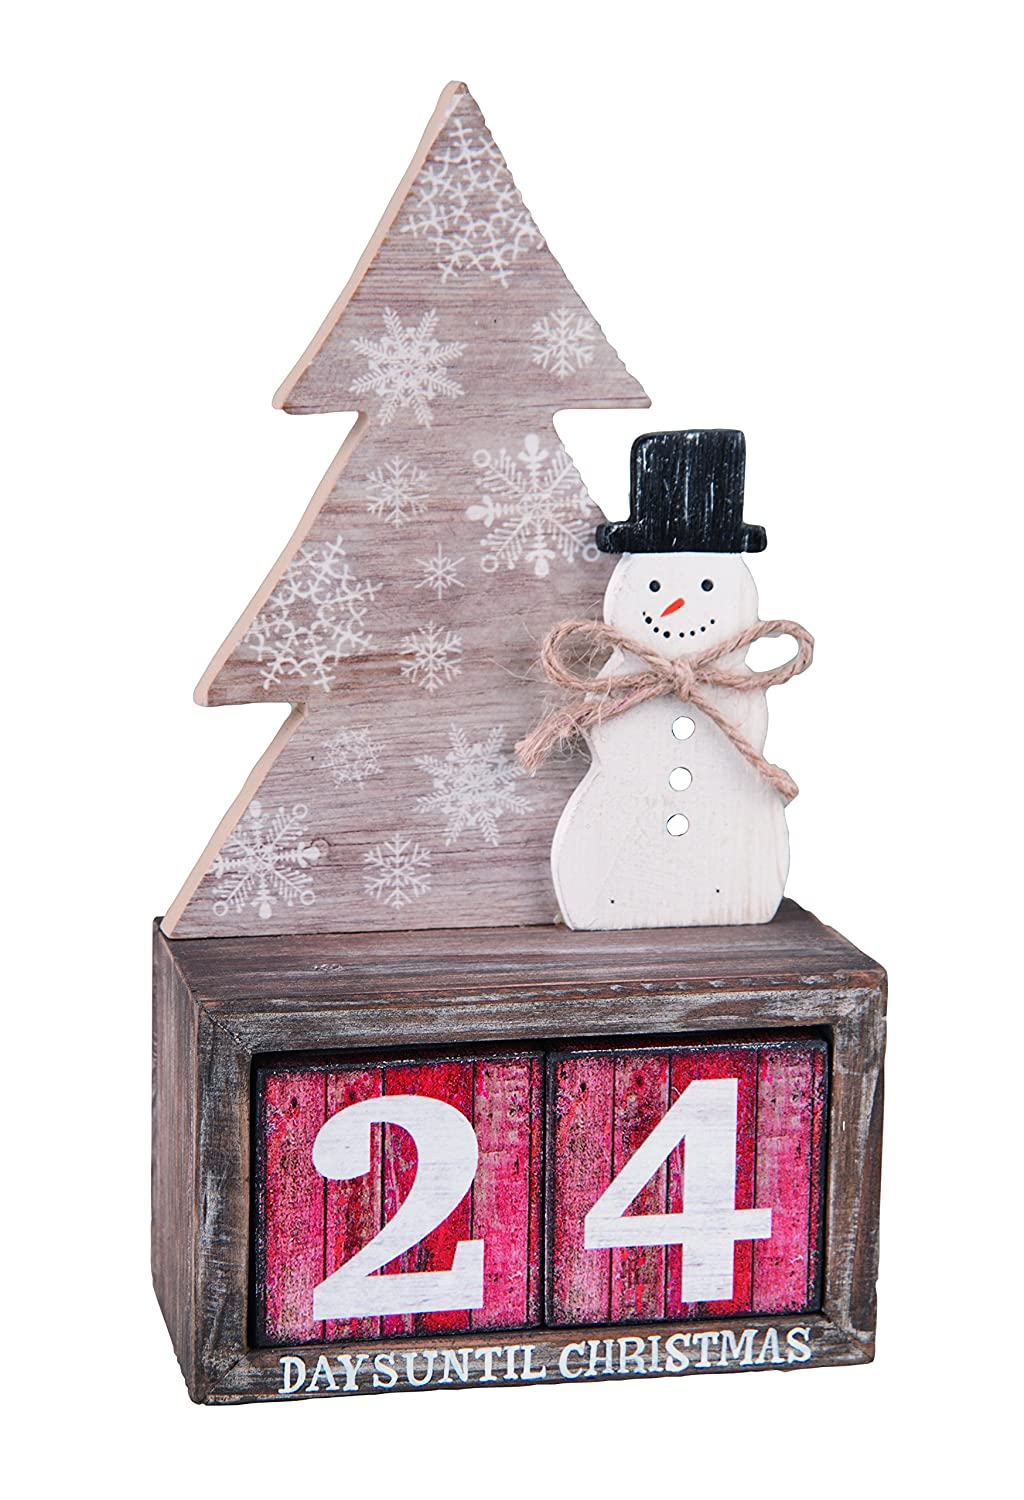 One Holiday Lane Rustic Wood Snowman and Tree Advent Countdown Calendar - Tabletop Christmas Countdown with Number Blocks Decoration